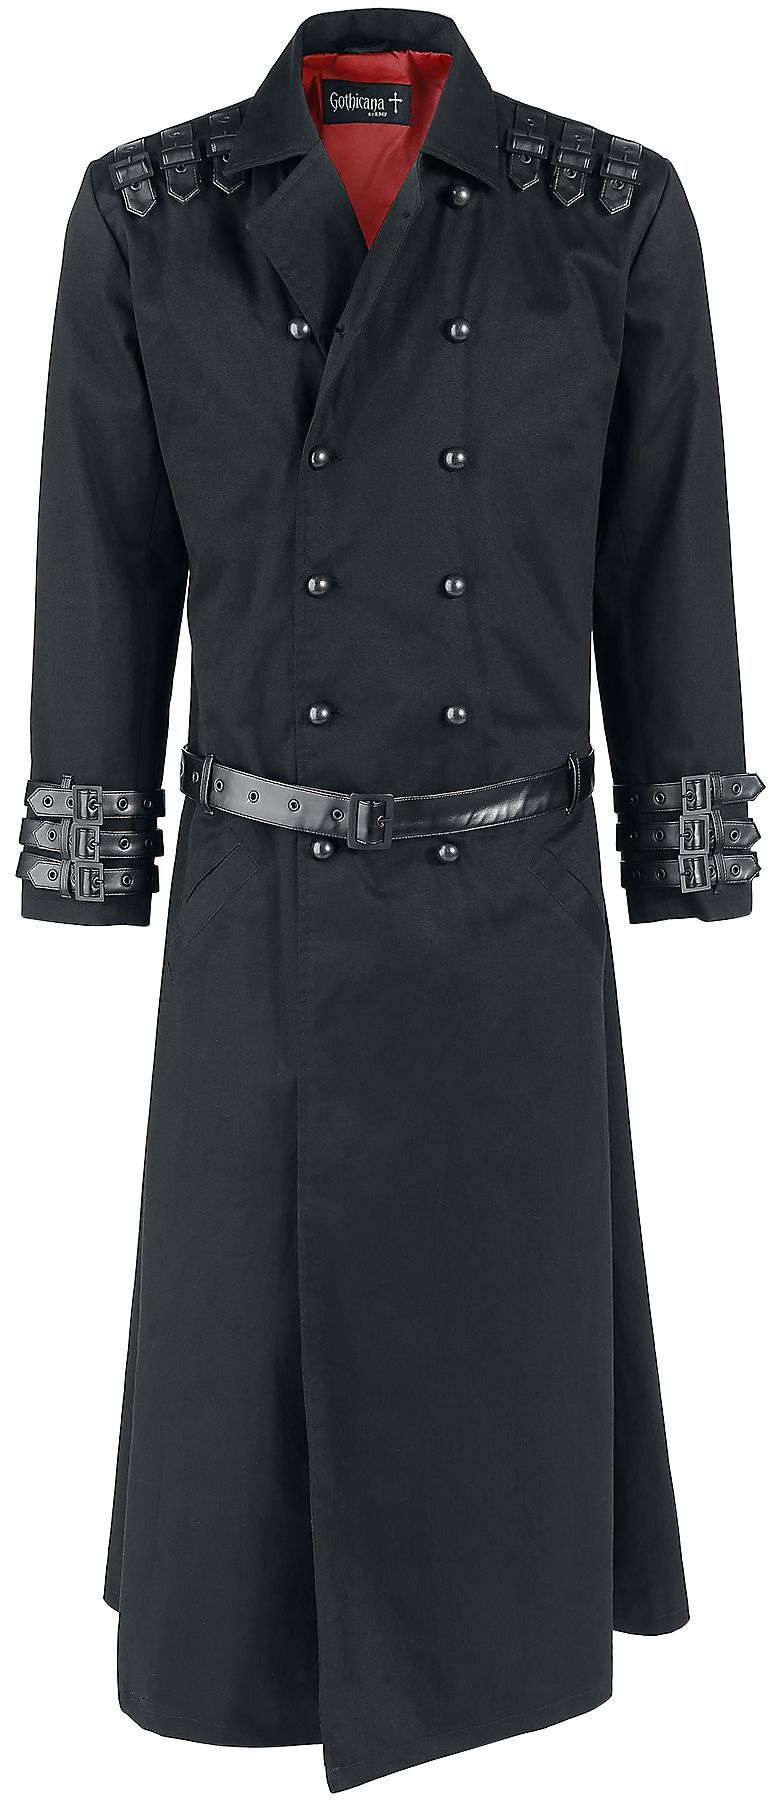 Aenima (With images) Clothes, Army coat, Black coat